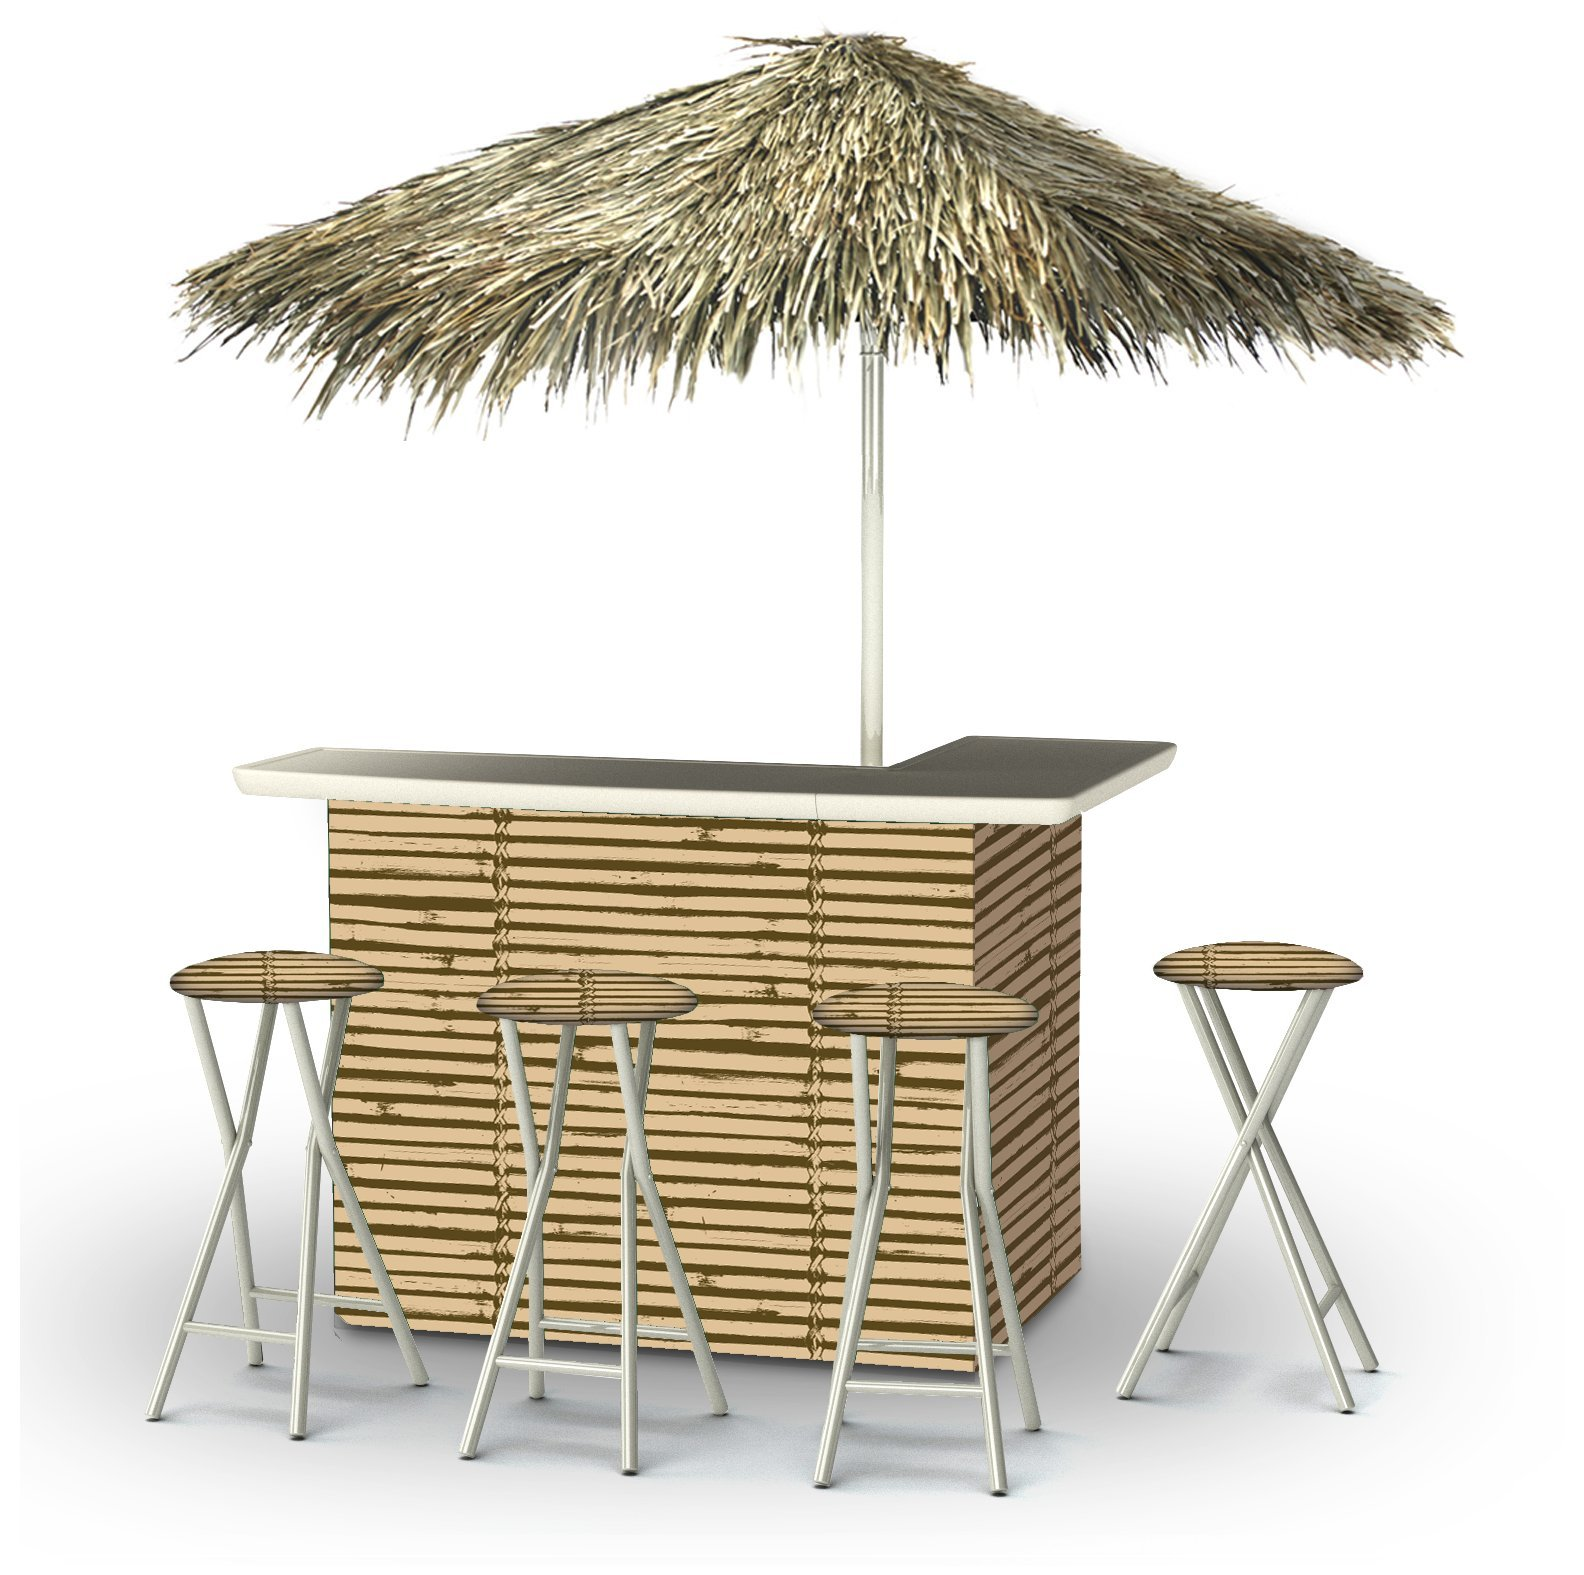 Best of Times Portable Deluxe Bar; Luau Tiki - Palapa by Best of Times, LLC